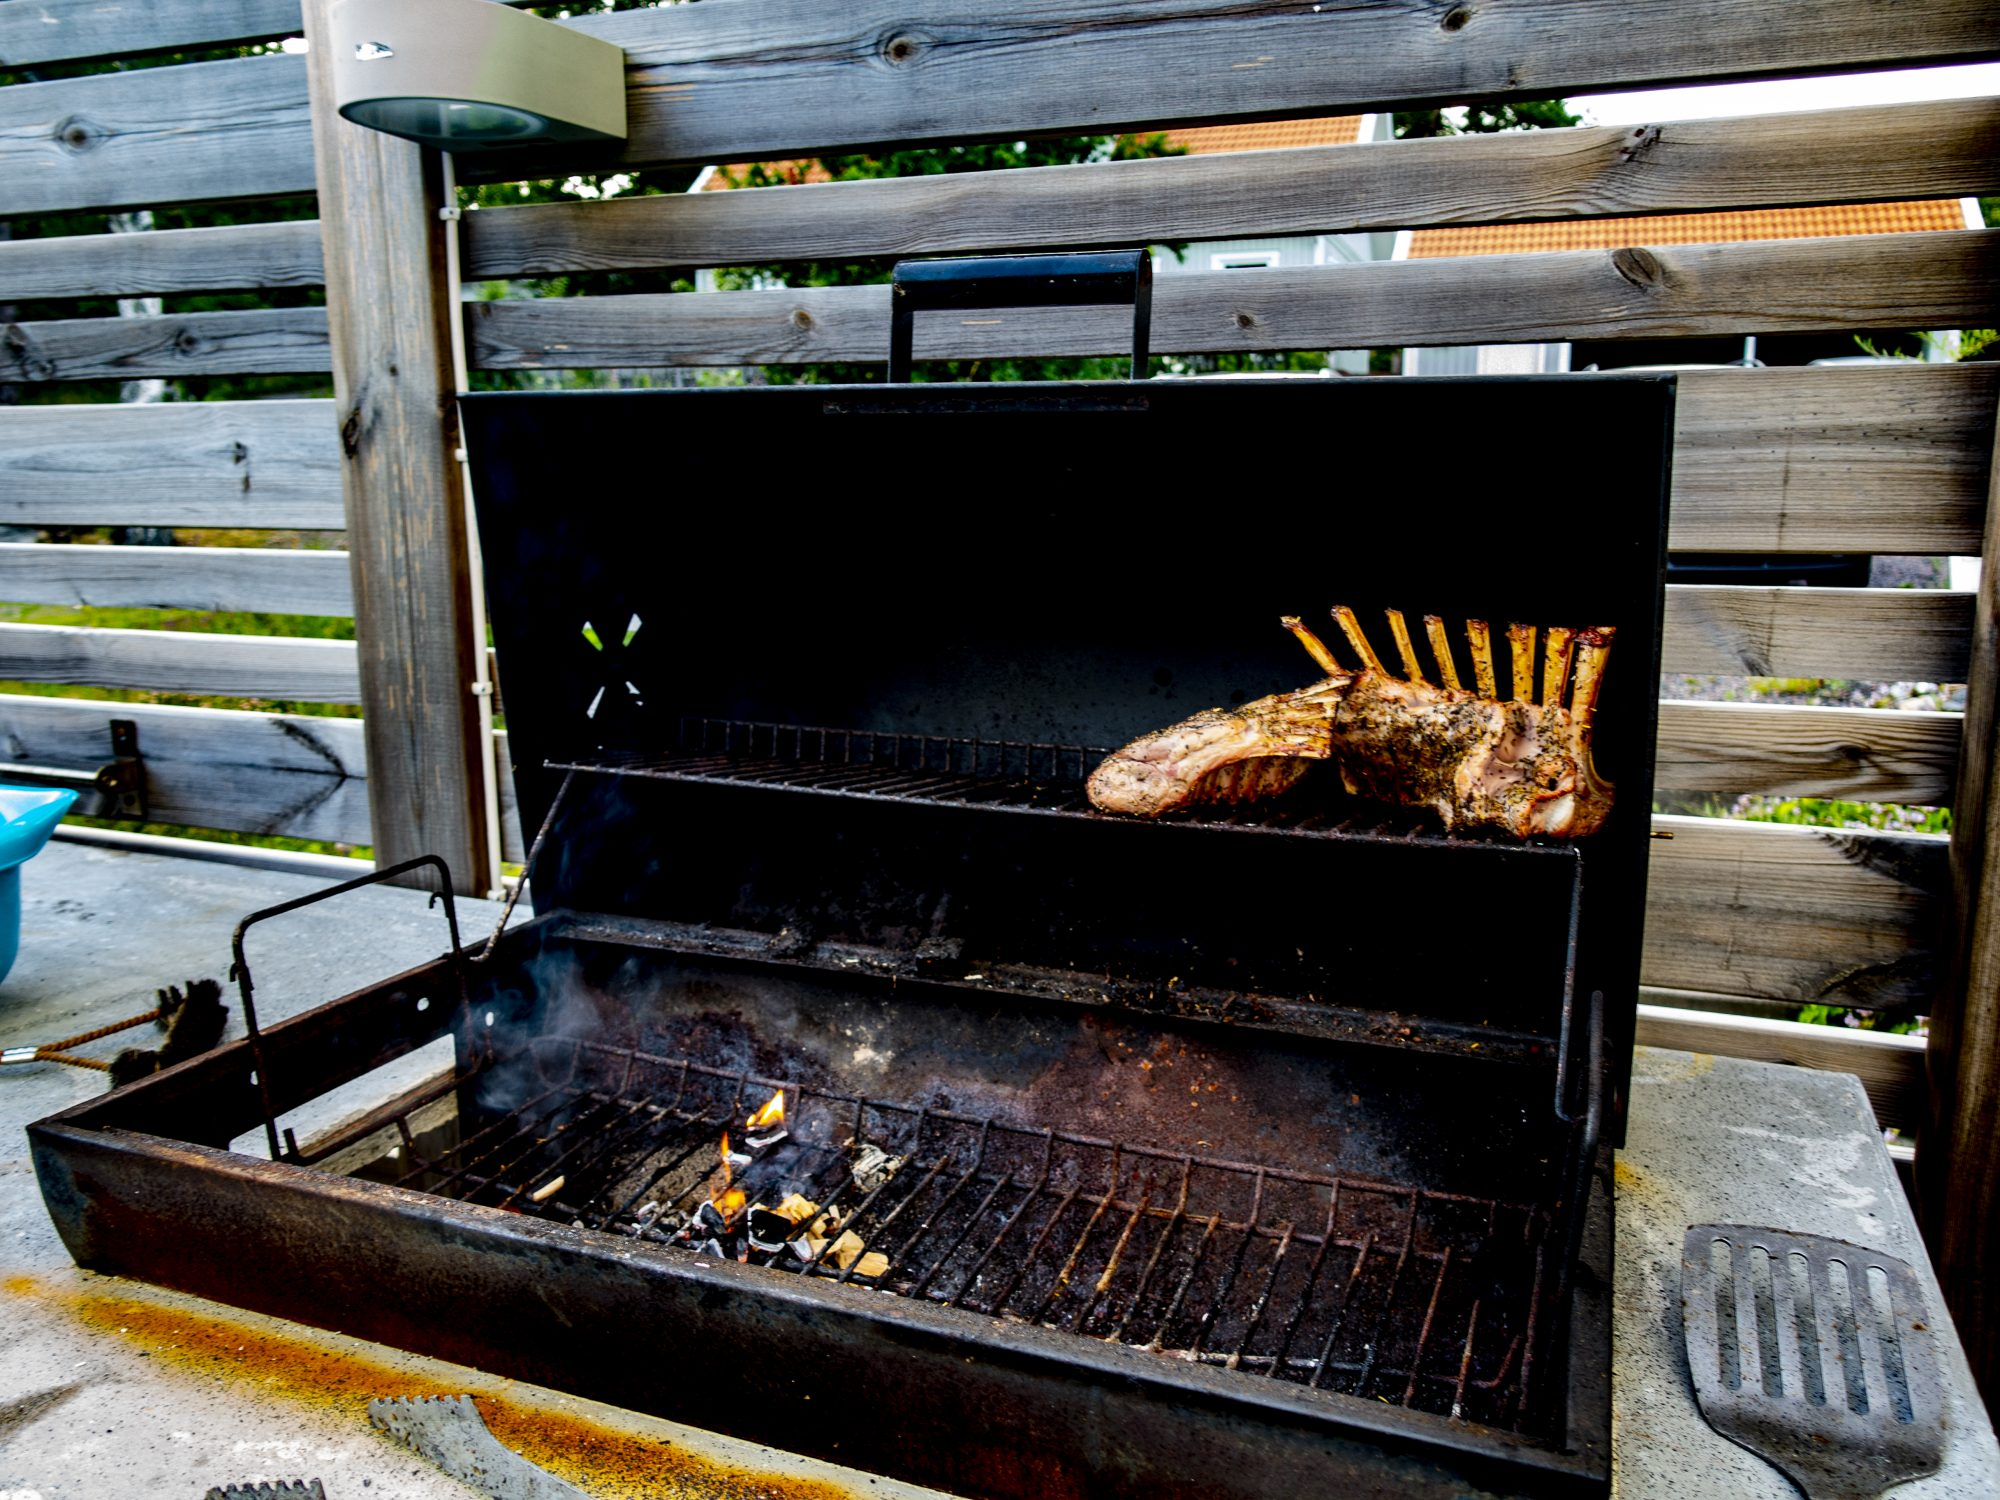 On the grill – GOTHWORK